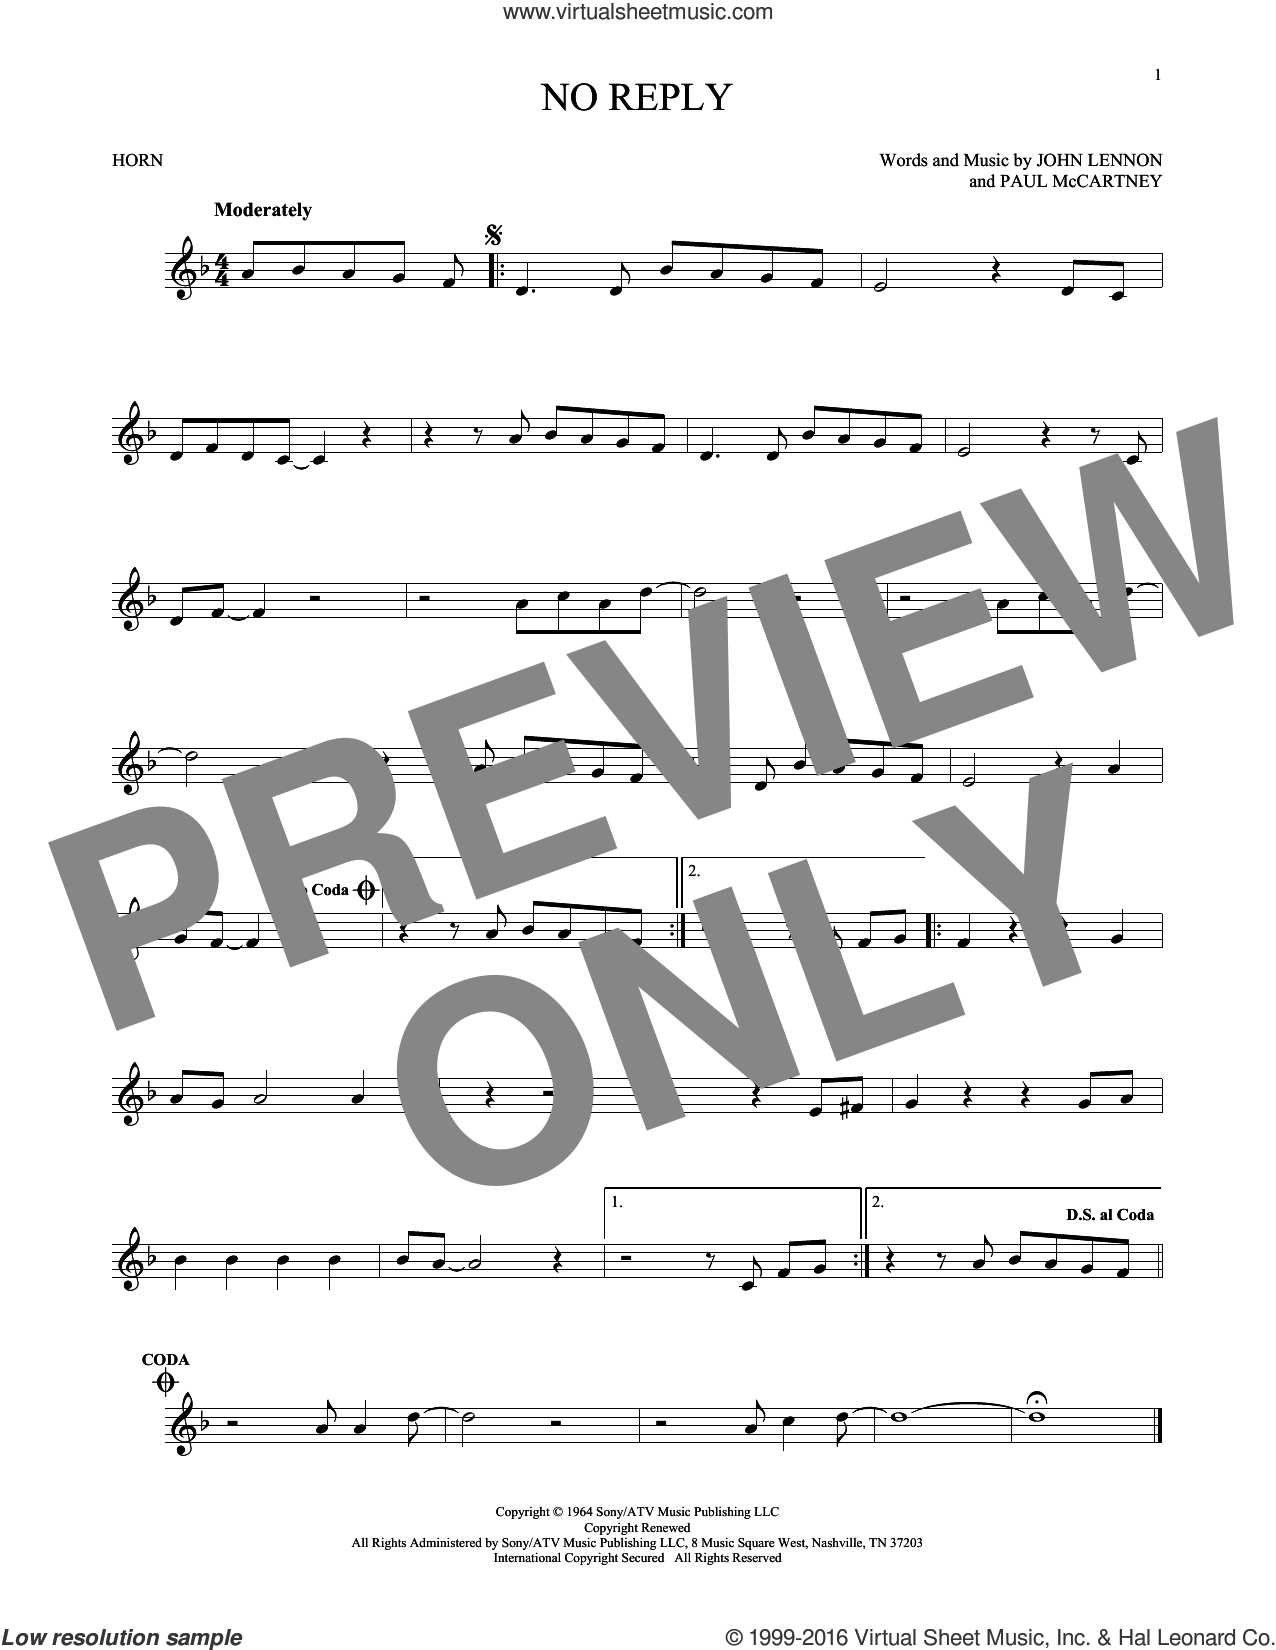 No Reply sheet music for horn solo by The Beatles, John Lennon and Paul McCartney. Score Image Preview.